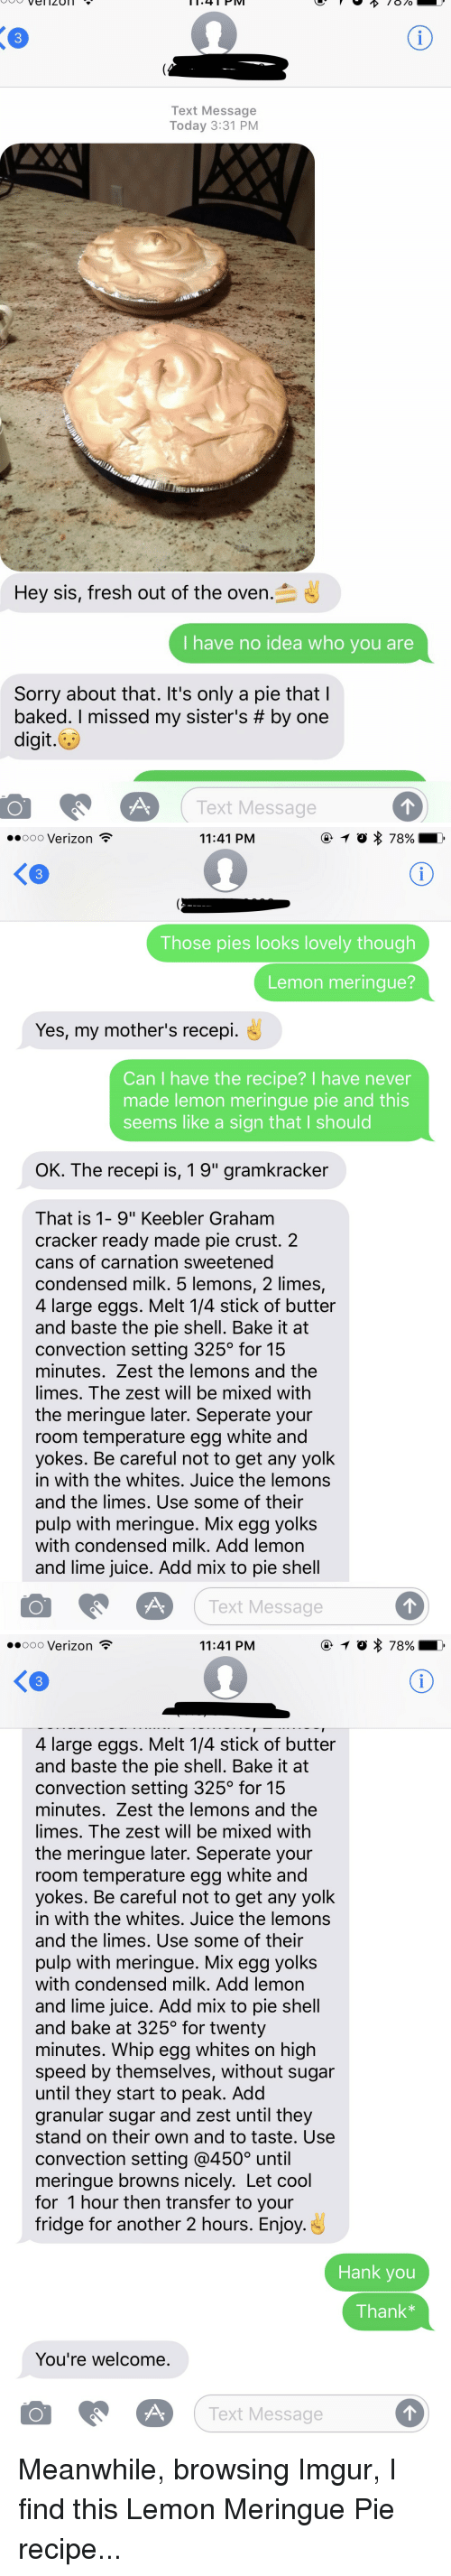 """oldpeoplefacebook: Vel 4 PM  PIV  Text Message  Today 3:31 PM  Hey sis, fresh out of the oven  I have no idea who you are  Sorry about that. It's only a pie that  baked. missed my sister's by one  digit.  O Text Message   ooooo Verizon  11:41 PM  Those pies looks lovely though  Lemon meringue?  Yes, my mother's recepi.  Can have the recipe? I have never  made lemon meringue pie and this  seems like a sign that l should  OK. The recepi is, 19"""" gramkracker  That is 1- 9"""" Keebler Graham  cracker ready made pie crust. 2  cans of carnation sweetened  condensed milk. 5 lemons, 2 limes,  4 large eggs. Melt 14 stick of butter  and baste the pie shell. Bake it at  convection setting 325 for 15  minutes. Zest the lemons and the  limes. The zest will be mixed with  the meringue later. Seperate your  room temperature egg white and  yokes. Be careful not to get any yolk  in with the whites. Juice the lemons  and the limes. Use some of their  pulp with meringue. Mix egg yolks  with condensed milk. Add lemon  and lime juice. Add mix to pie shell  O A Text Message   ooooo Verizon  11:41 PM  4 large eggs. Melt 14 stick of butter  and baste the pie shell. Bake it at  convection setting 325 for 15  minutes. Zest the lemons and the  limes. The zest will be mixed with  the meringue later. Seperate your  room temperature egg white and  yokes. Be careful not to get any yolk  in with the whites. Juice the lemons  and the limes. Use some of their  pulp with meringue. Mix egg yolks  with condensed milk. Add lemon  and lime juice. Add mix to pie shell  and bake at 325 for twenty  minutes. Whip egg whites on high  speed by themselves, without sugar  until they start to peak. Add  granular sugar and zest until they  stand on their own and to taste. Use  convection setting @4500 until  meringue browns nicely. Let cool  for 1 hour then transfer to your  fridge for another 2 hours. Enjoy  Hank you  Thank  You're welcome  O A.  Text Message Meanwhile, browsing Imgur, I find this Lemon Meringue Pie """